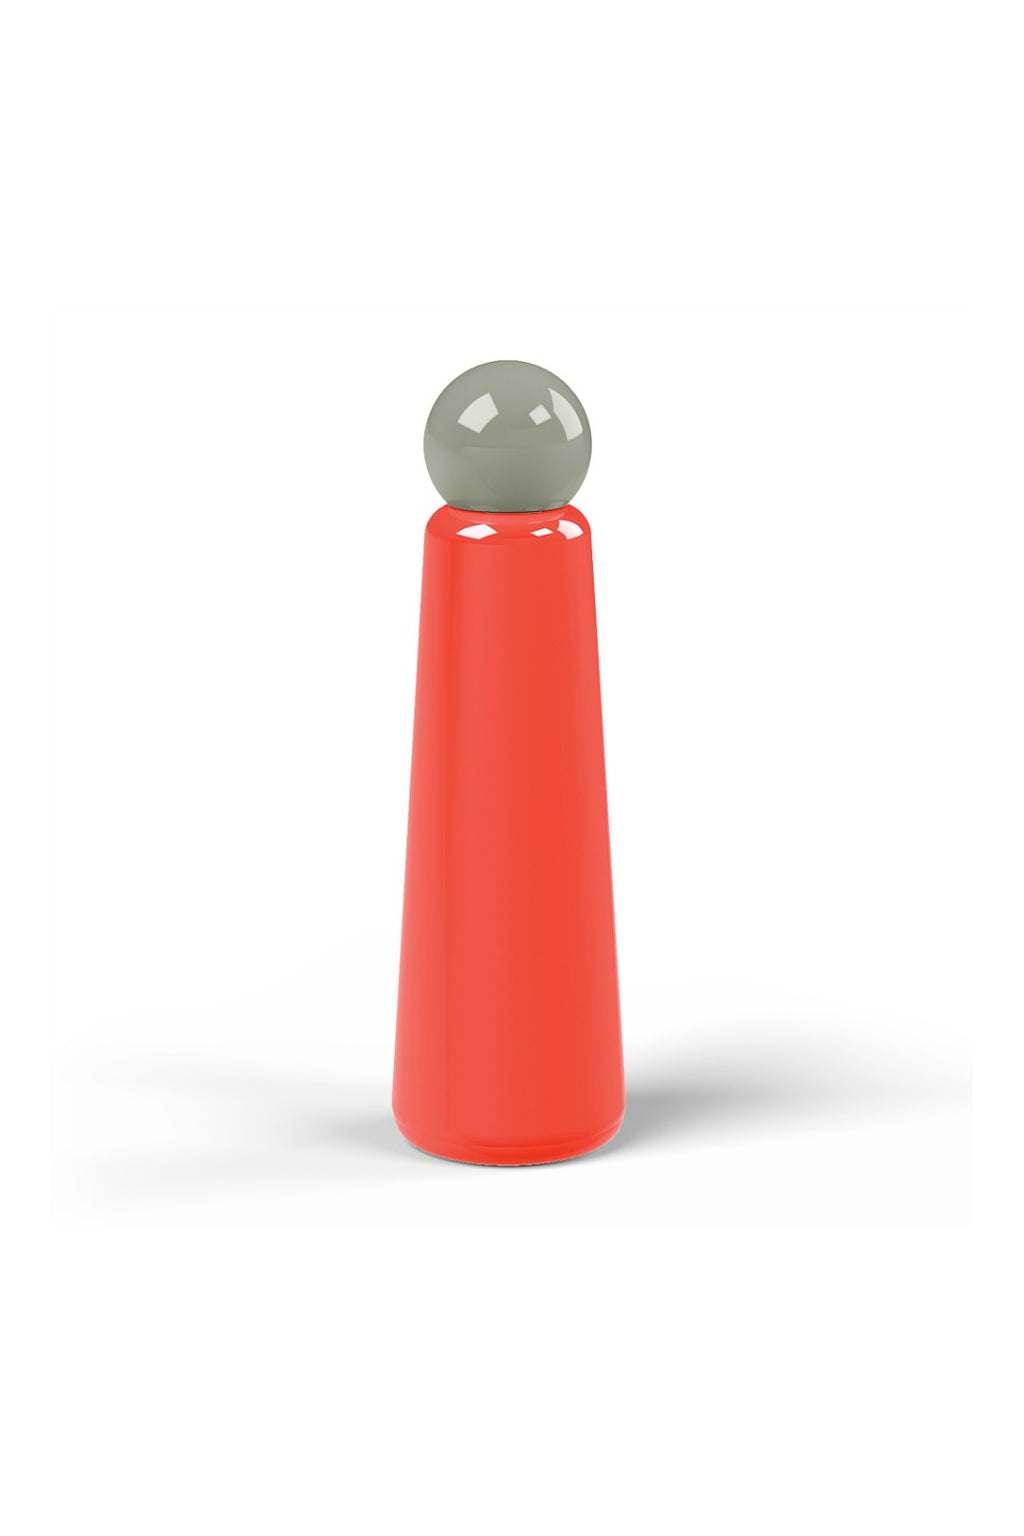 Lund London Skittle Bottle Jumbo - Coral & Dark Grey